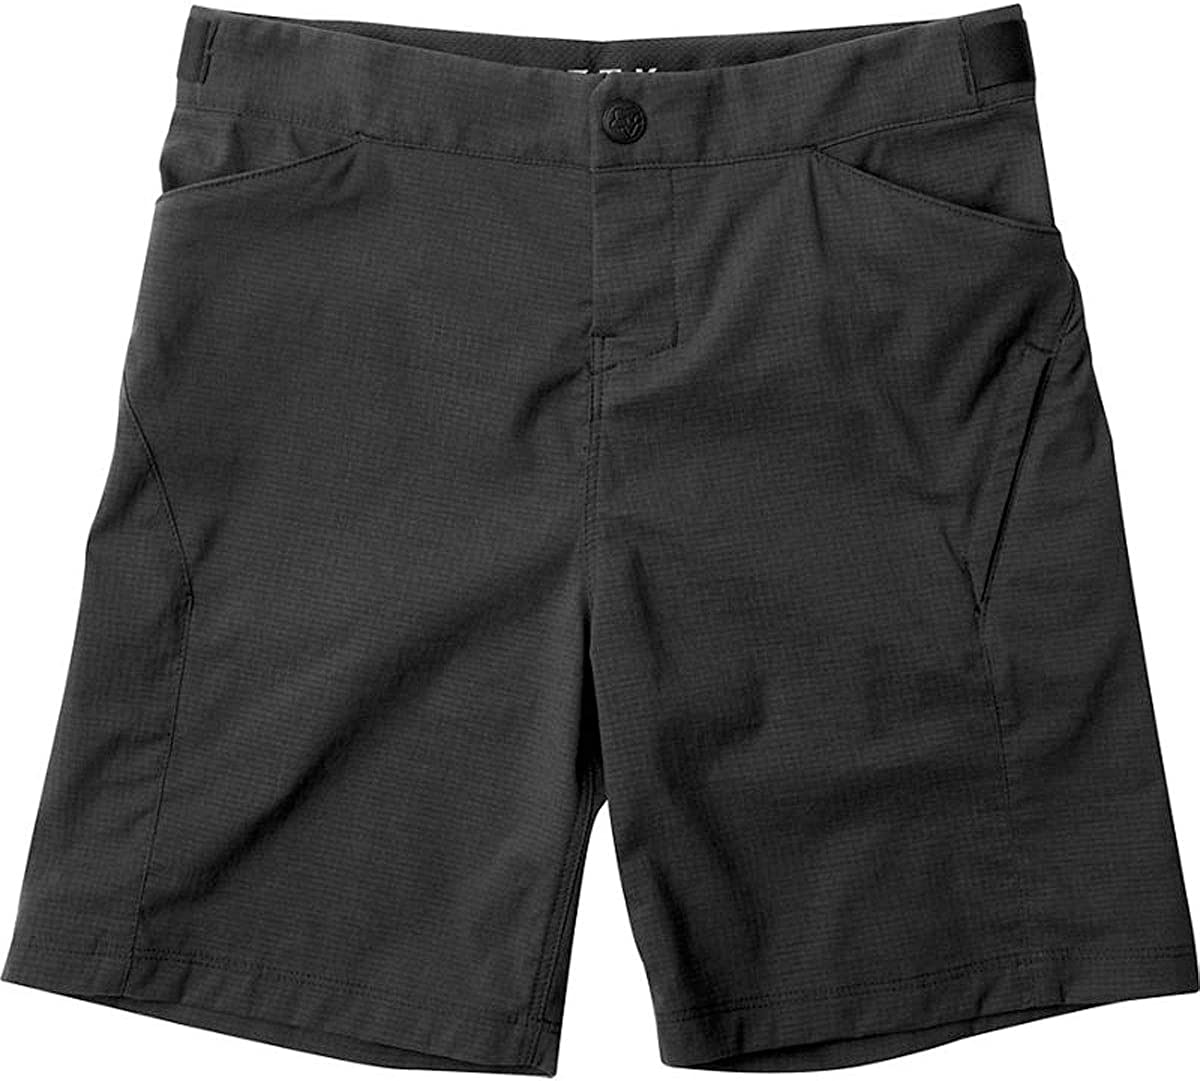 Fox Racing Boys' Cycling Shorts